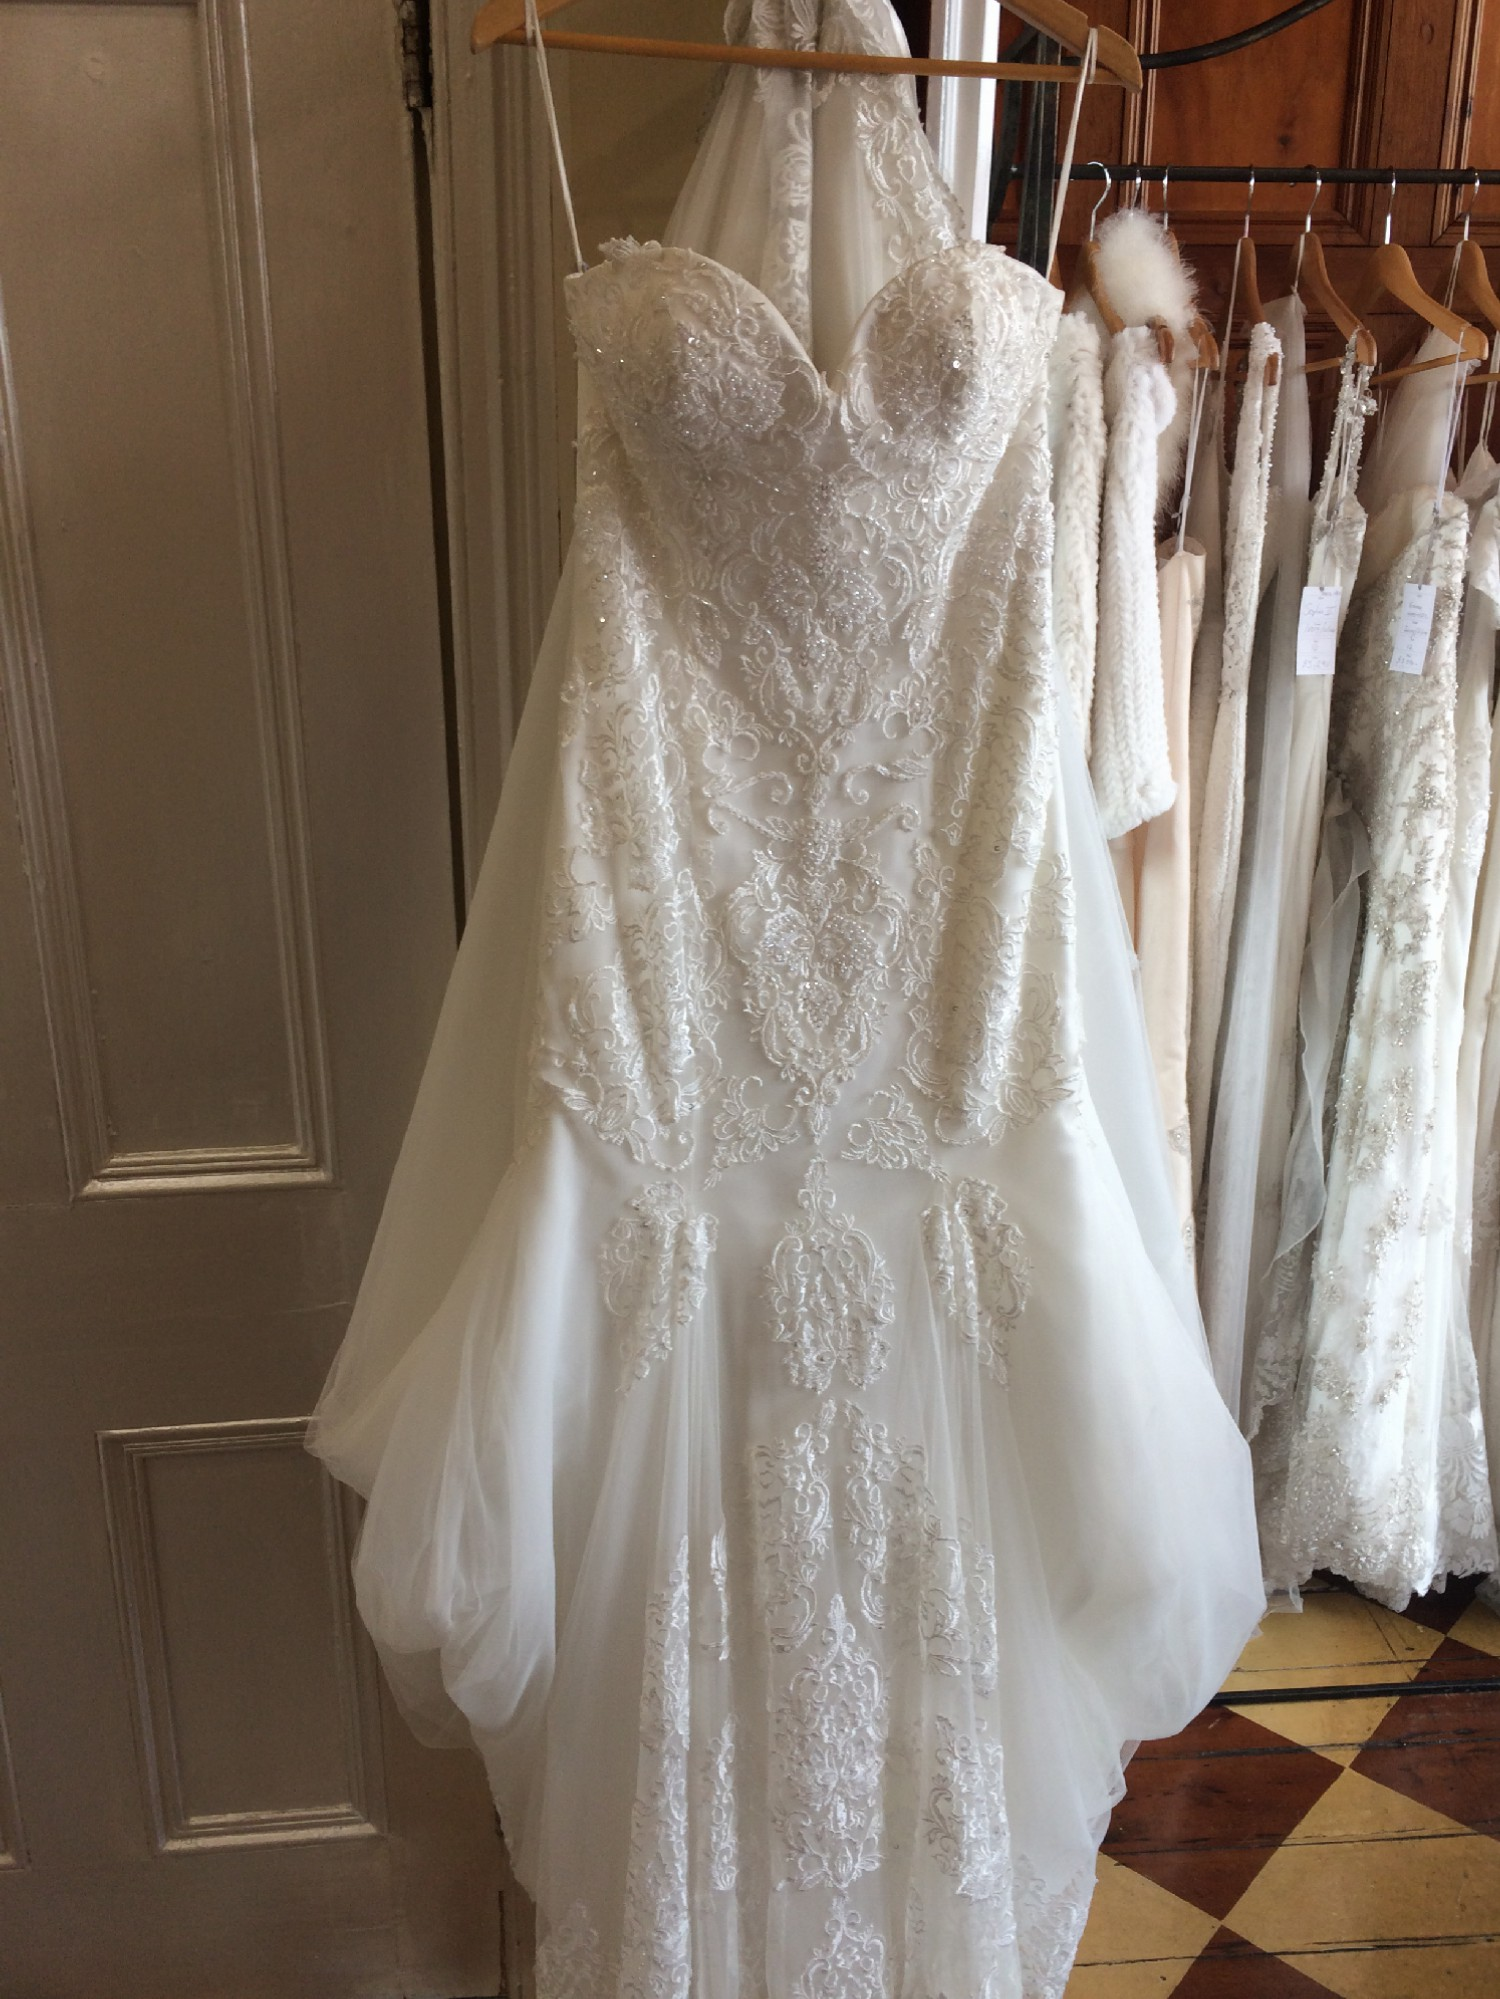 Brides of armadale second hand wedding dress on sale 56 off for Second hand wedding dresses for sale